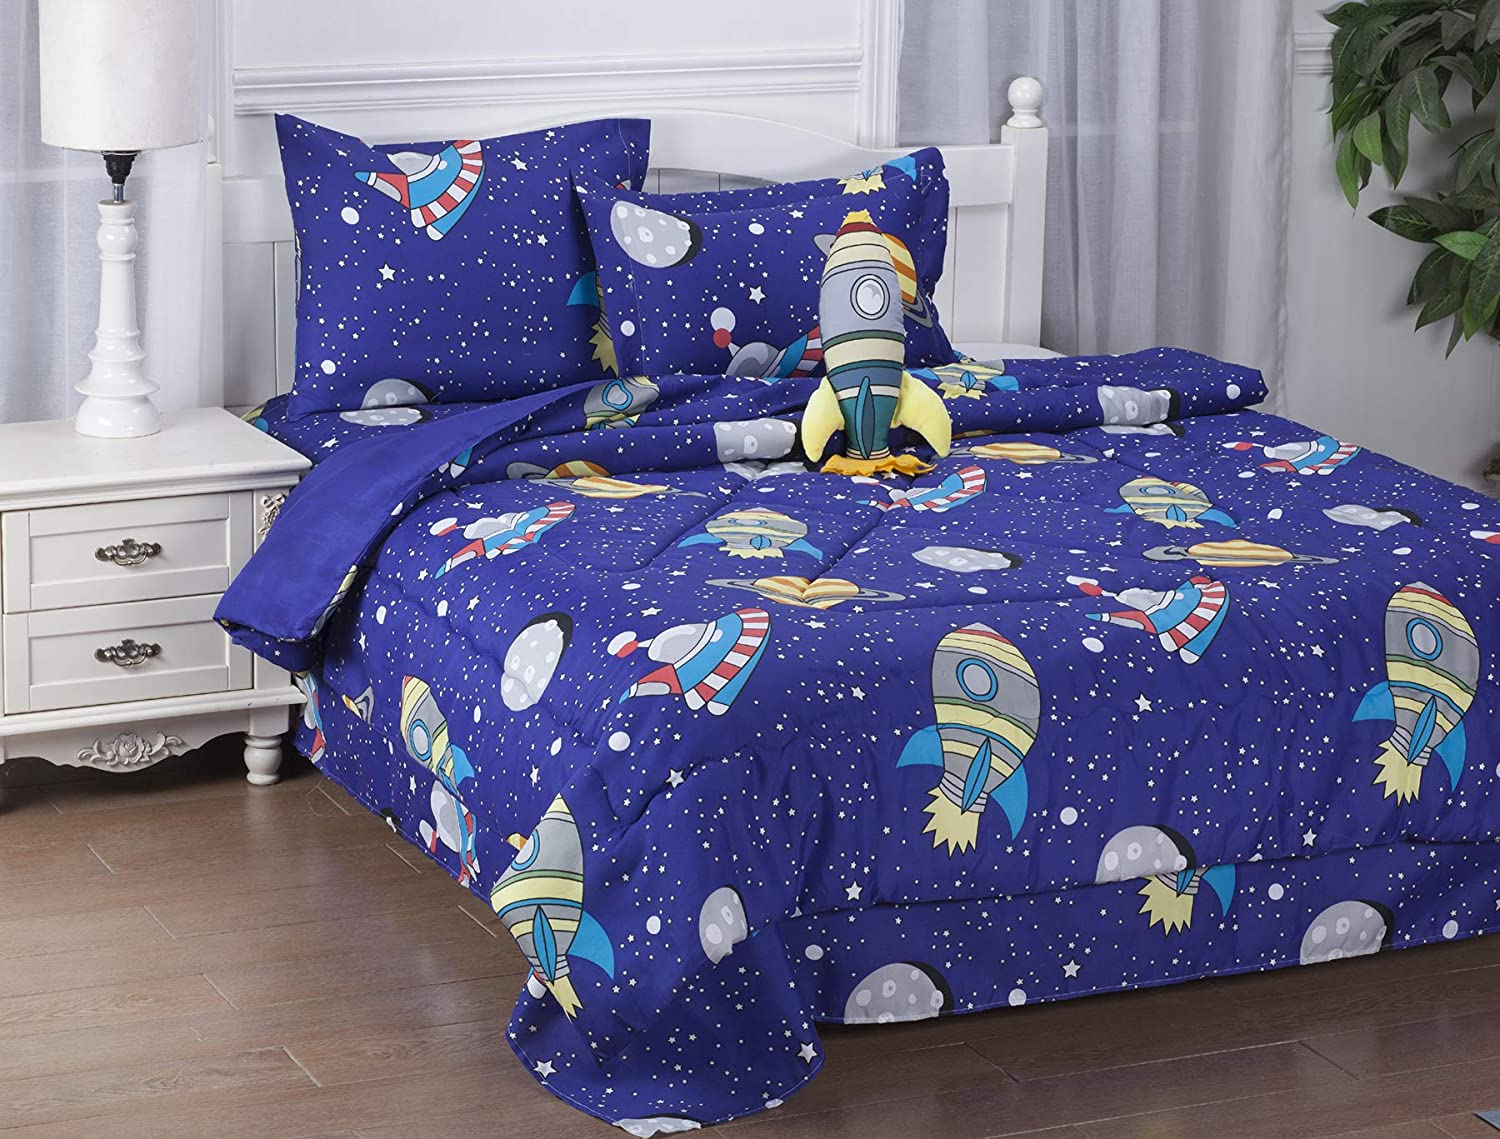 GorgeousHomeLinen 6-PC Twin Complete Bed in A Bag Comforter Bedding Set with Furry Friend and Matching Sheet Set for Kids (Twin, Space Sky Rockets)